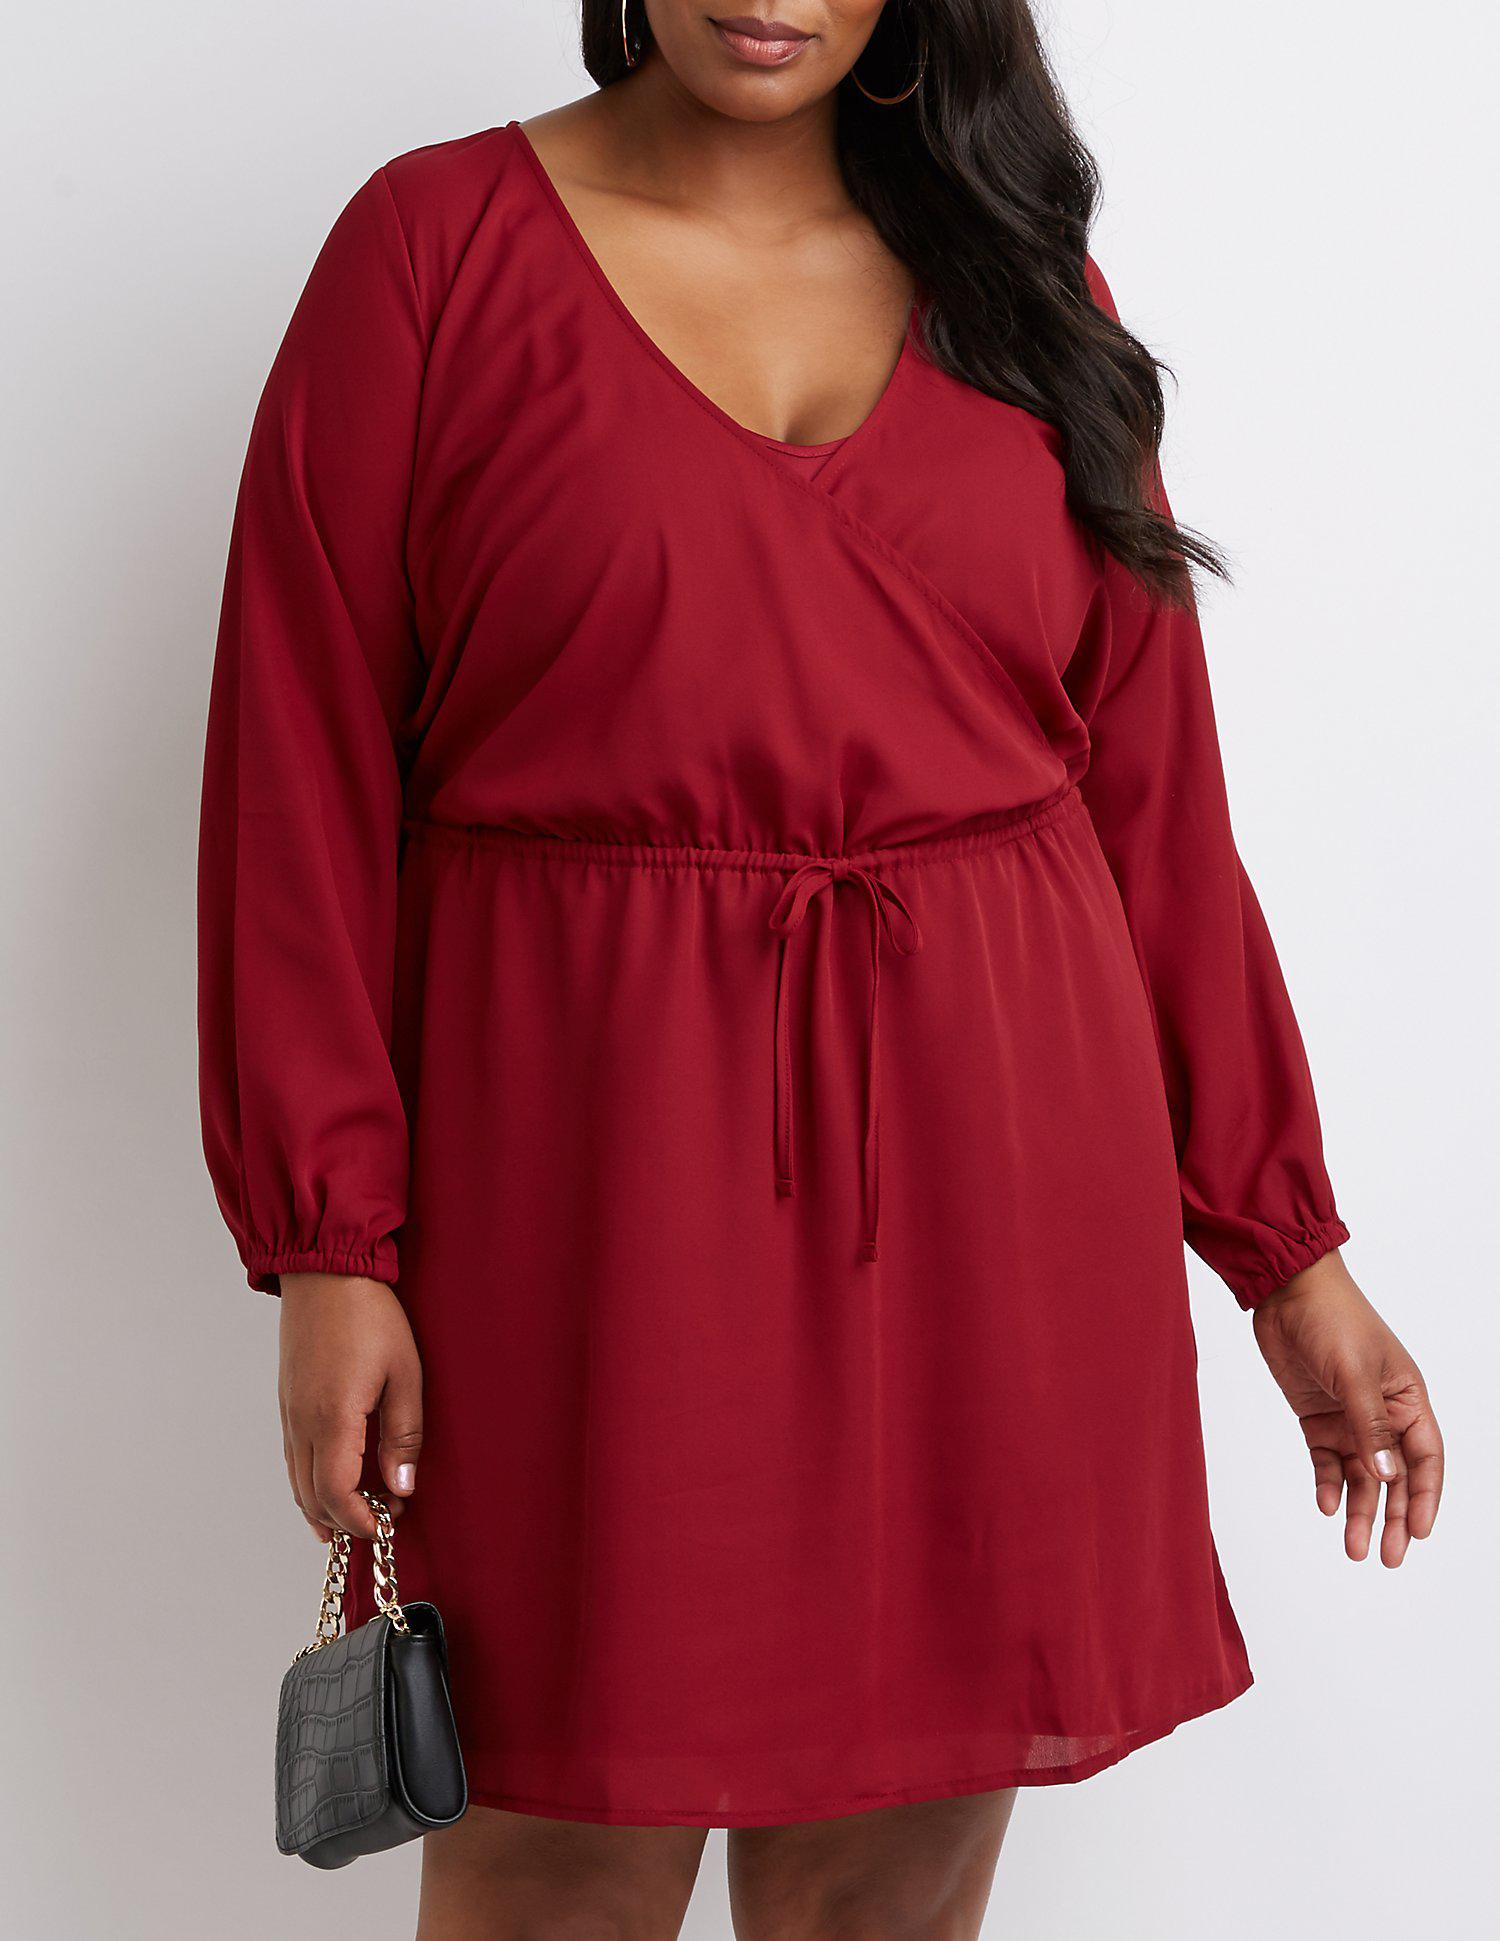 Lyst - Charlotte Russe Plus Size Keyhole Wrap Dress in Red ...